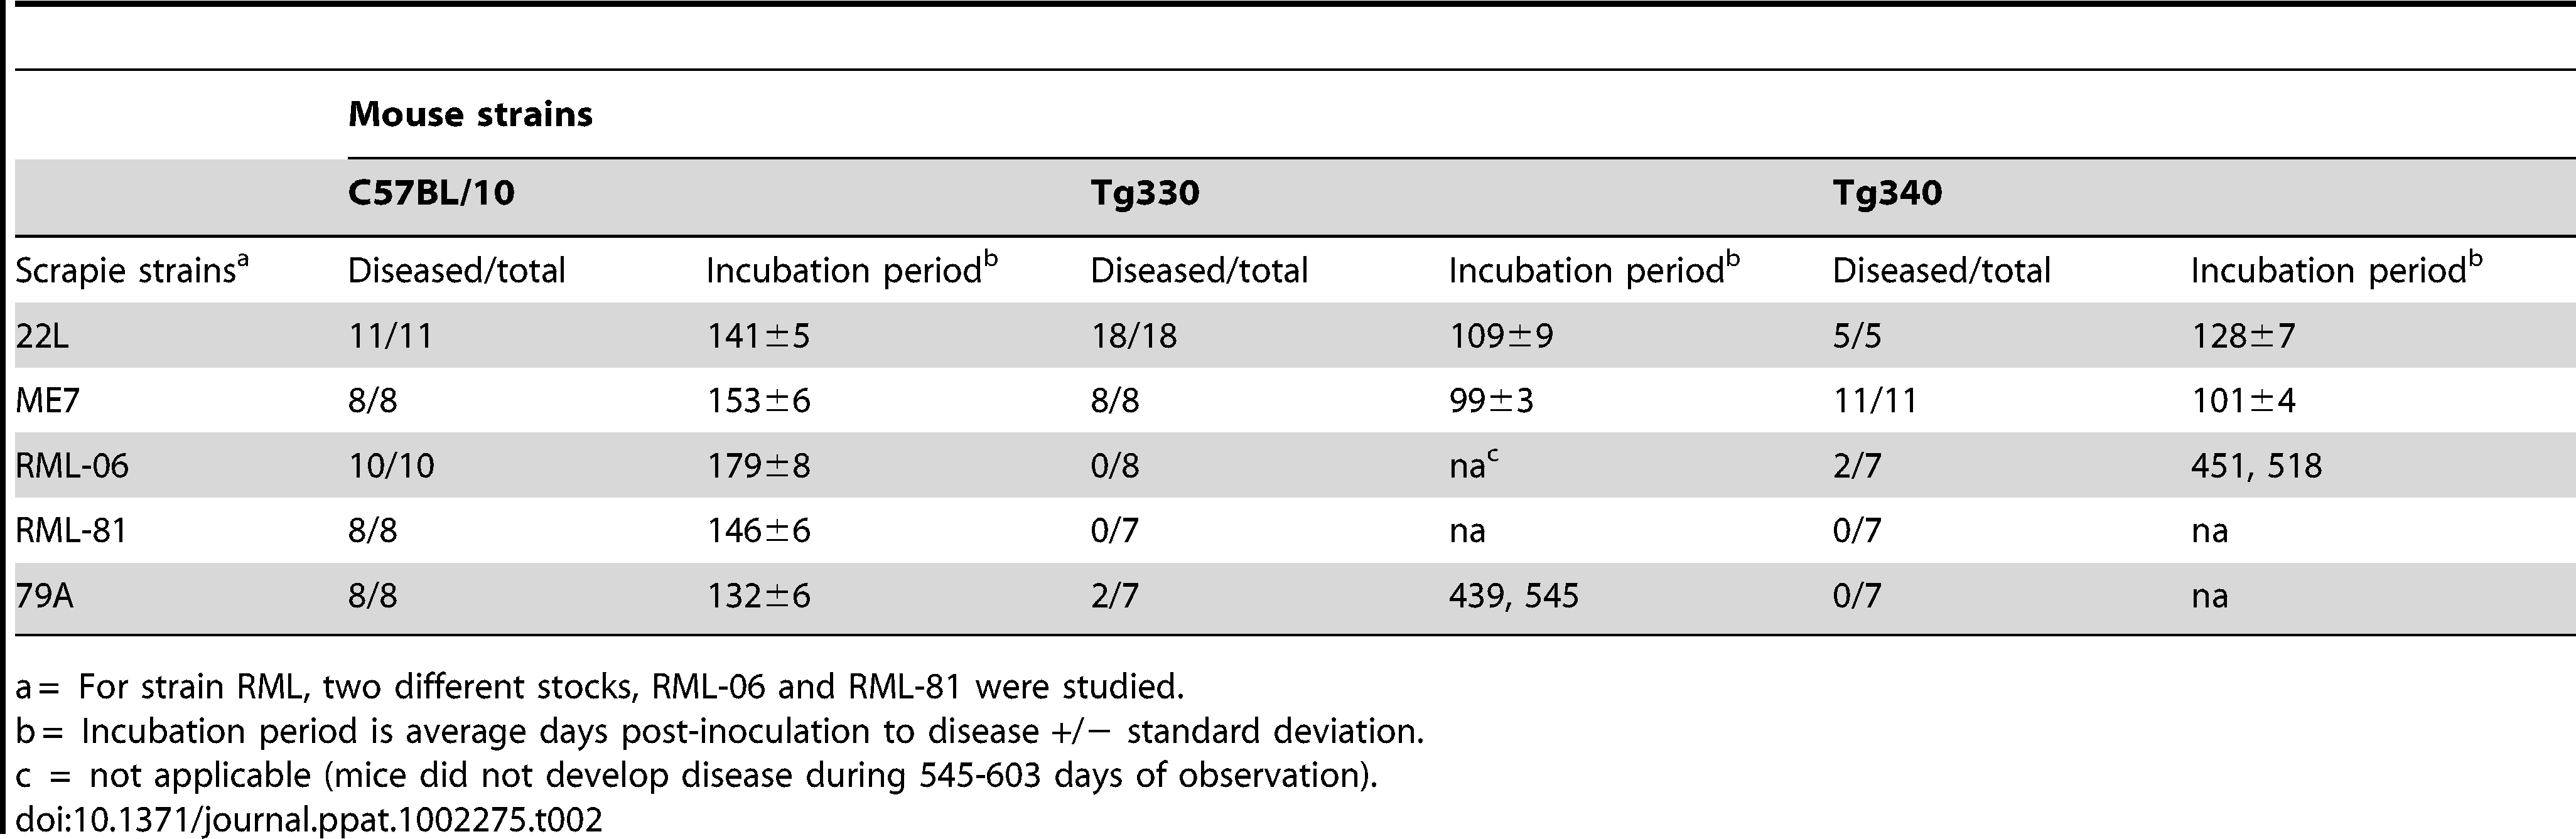 Susceptibility of transgenic and C57BL/10 mice to four strains of scrapie.